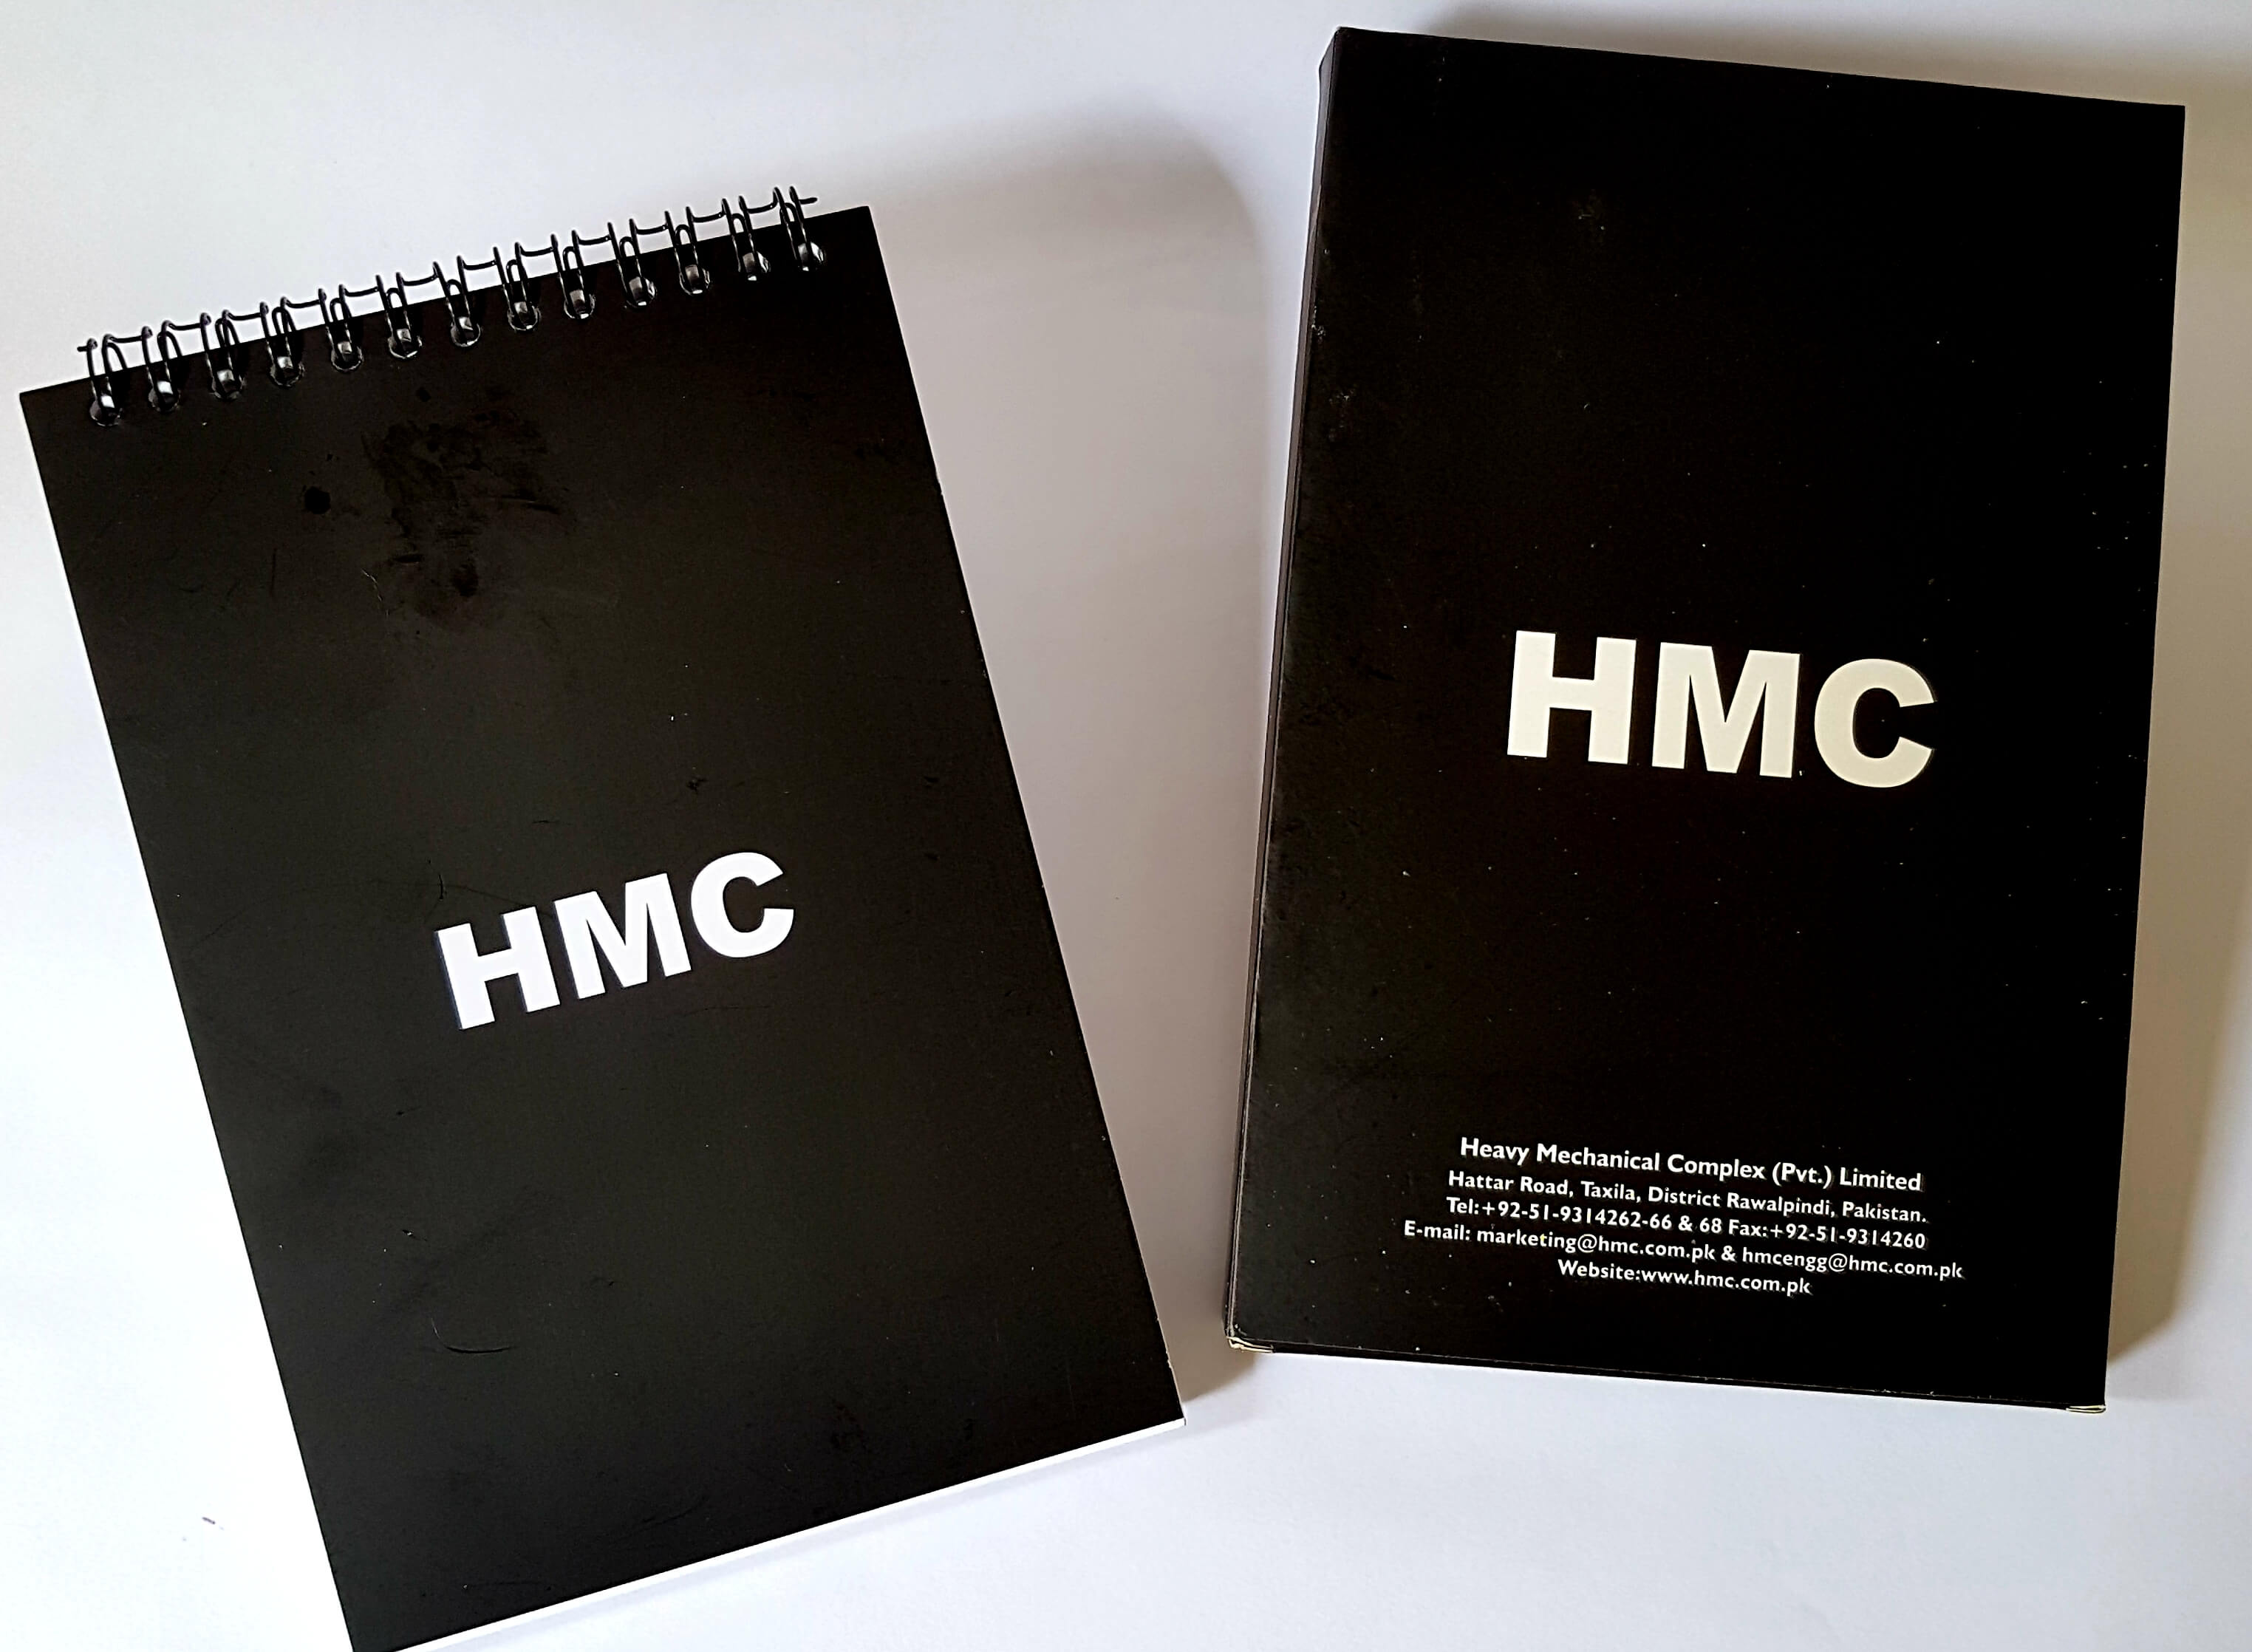 Giveaways For Heavy Mechanical Complex (HMC)